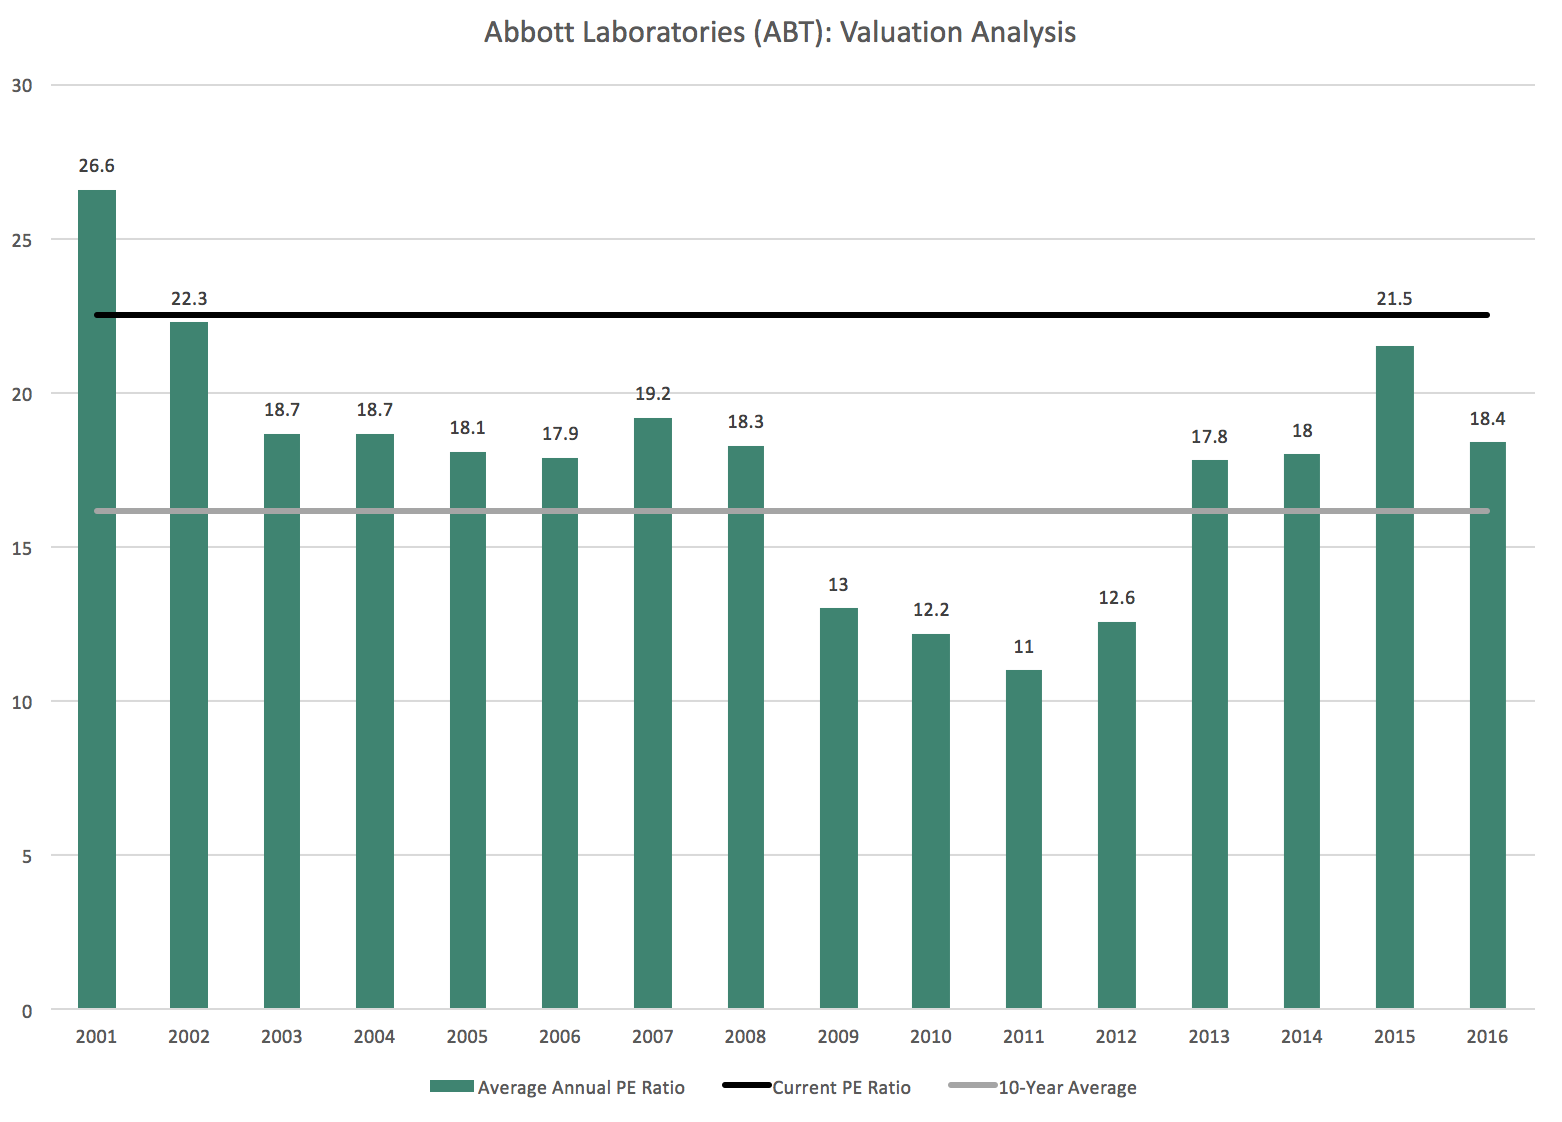 abbott labs financial analysis Stoxlinecom provides: stock quote, technical analysis, fundamental analysis abbott labs responds to 'errors' in iss proxy recommendation financial analysis.